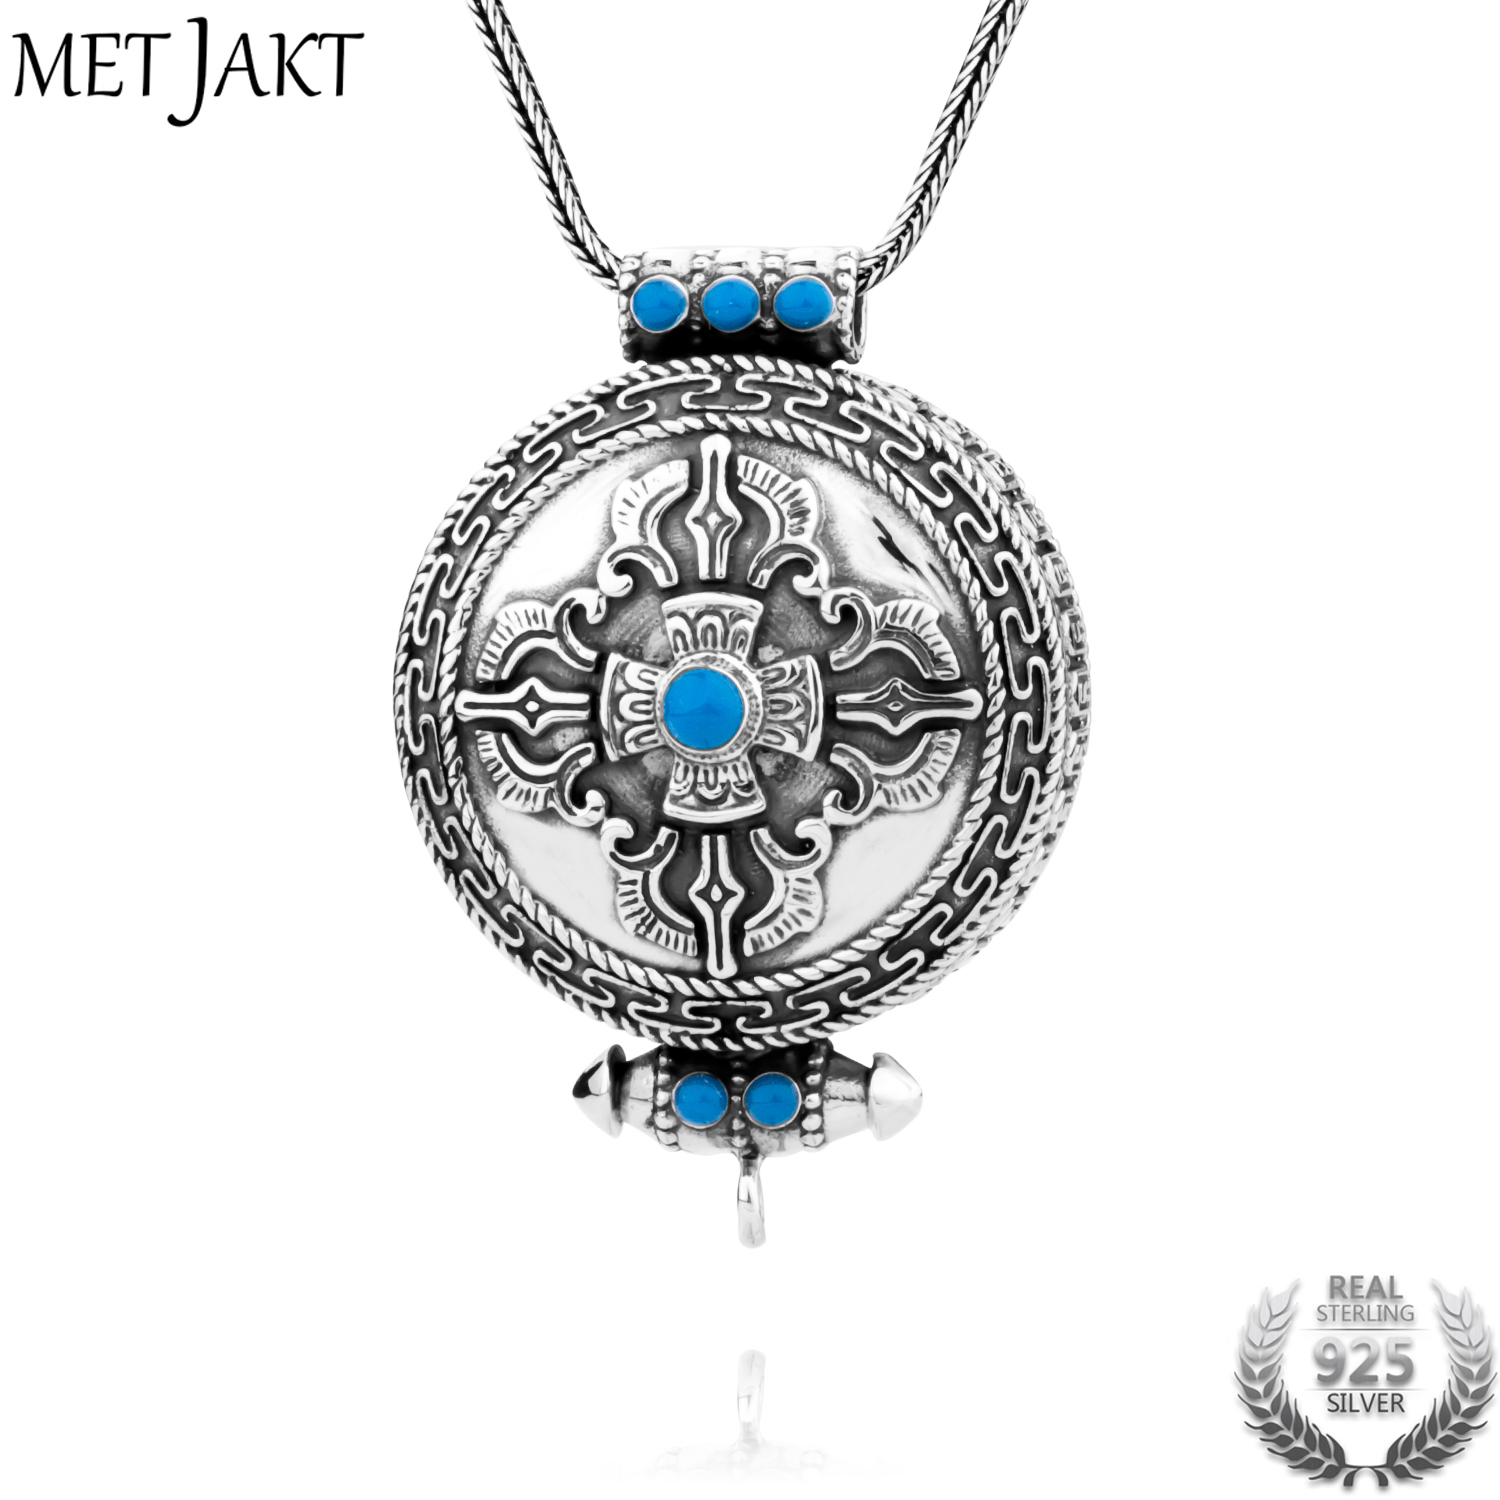 MetJakt Natural Turquoise Necklace Vintage 925 Sterling Silver Pendant and Snake Chain Men's Peace Pendant Religious Jewelry metjakt punk buddhism 925 sterling silver peace pendant necklace and snake chain unisex exorcise evil spirits jewelry